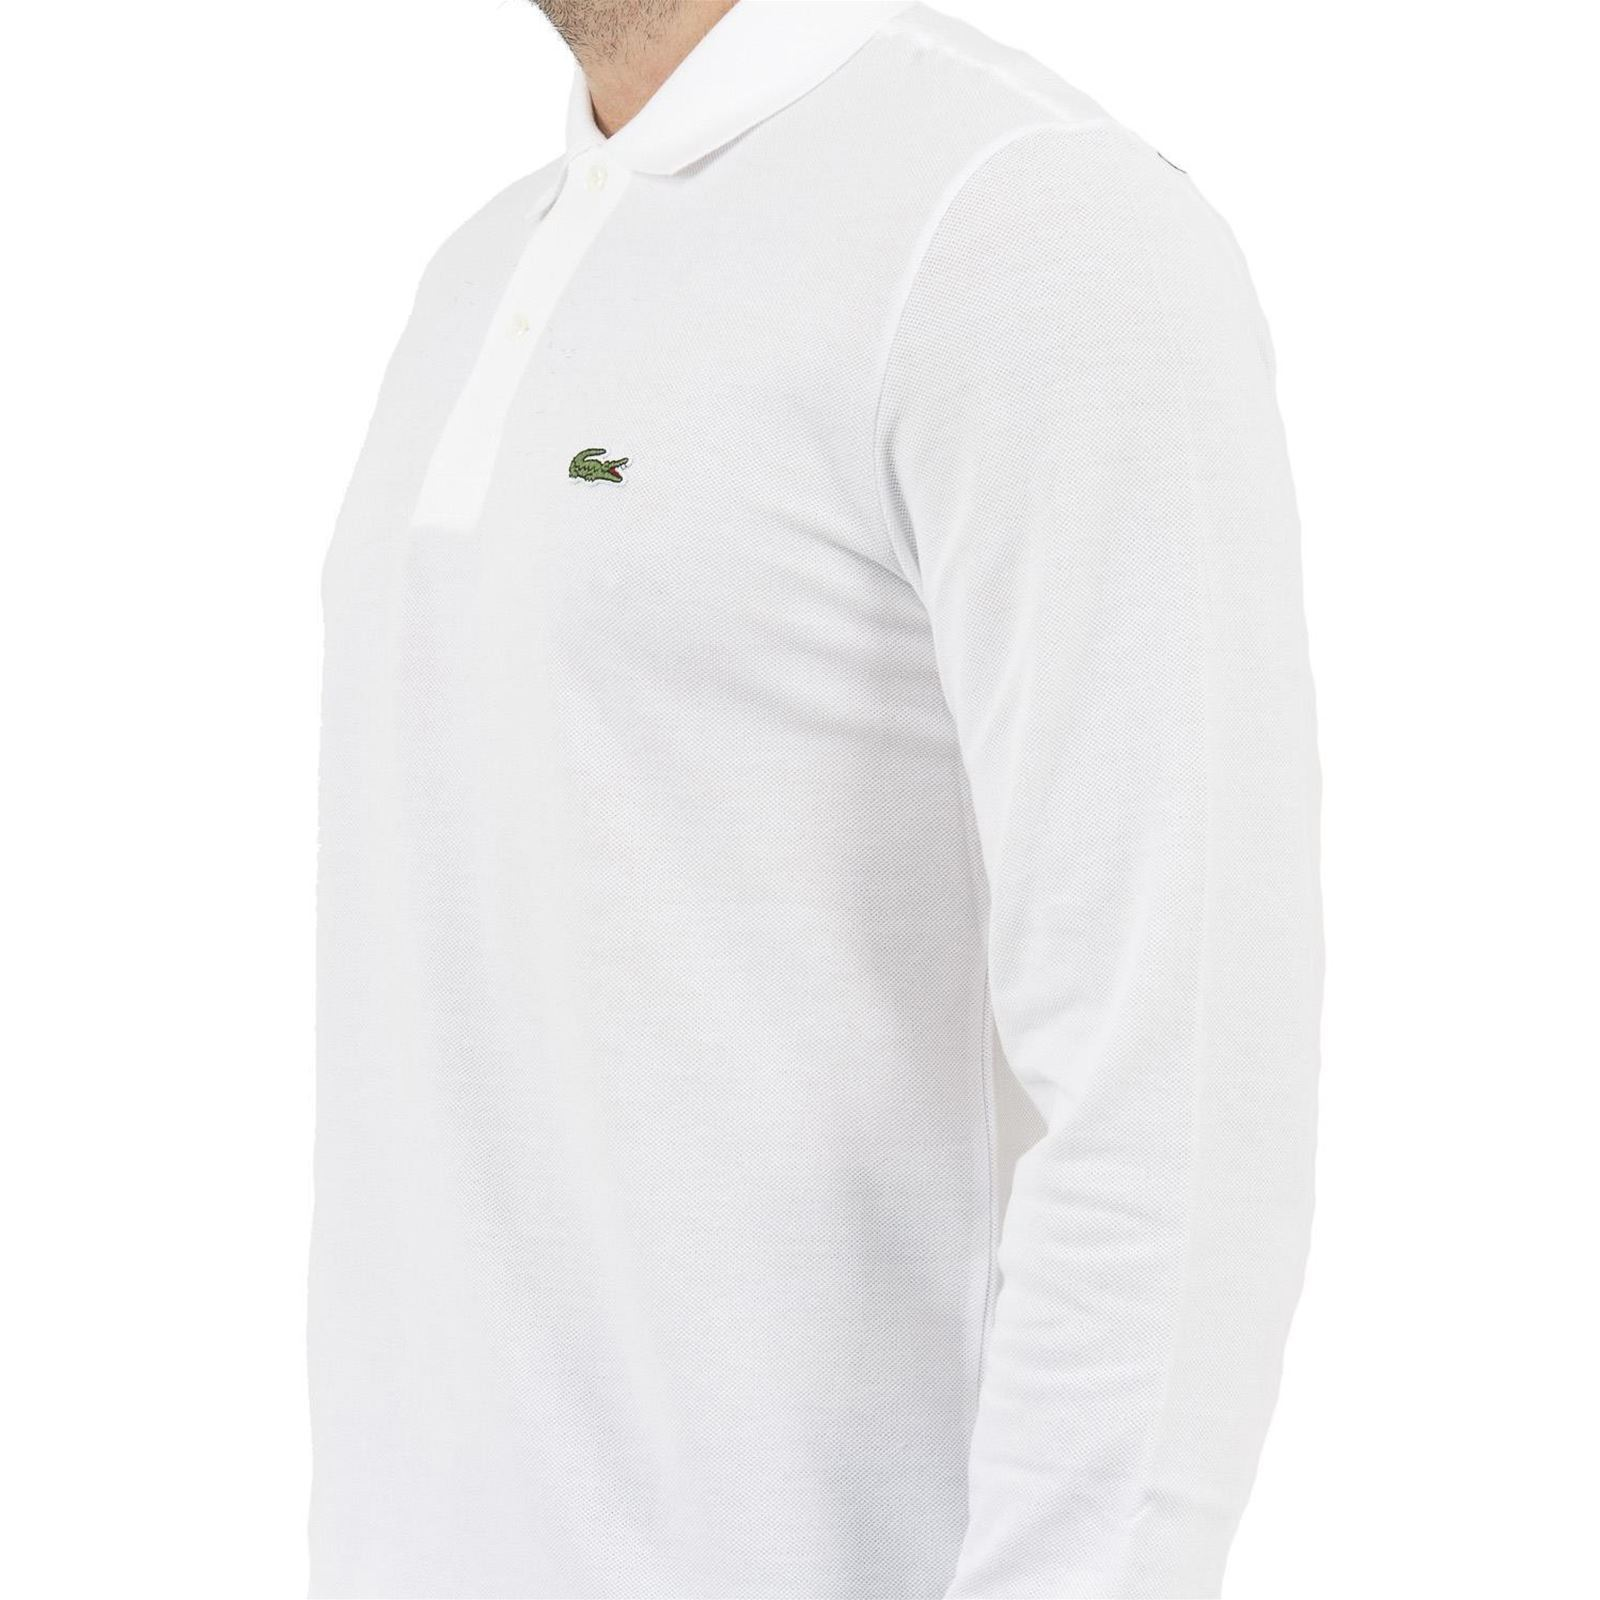 360749bf8a Lacoste Polo manches longues - blanc   BrandAlley